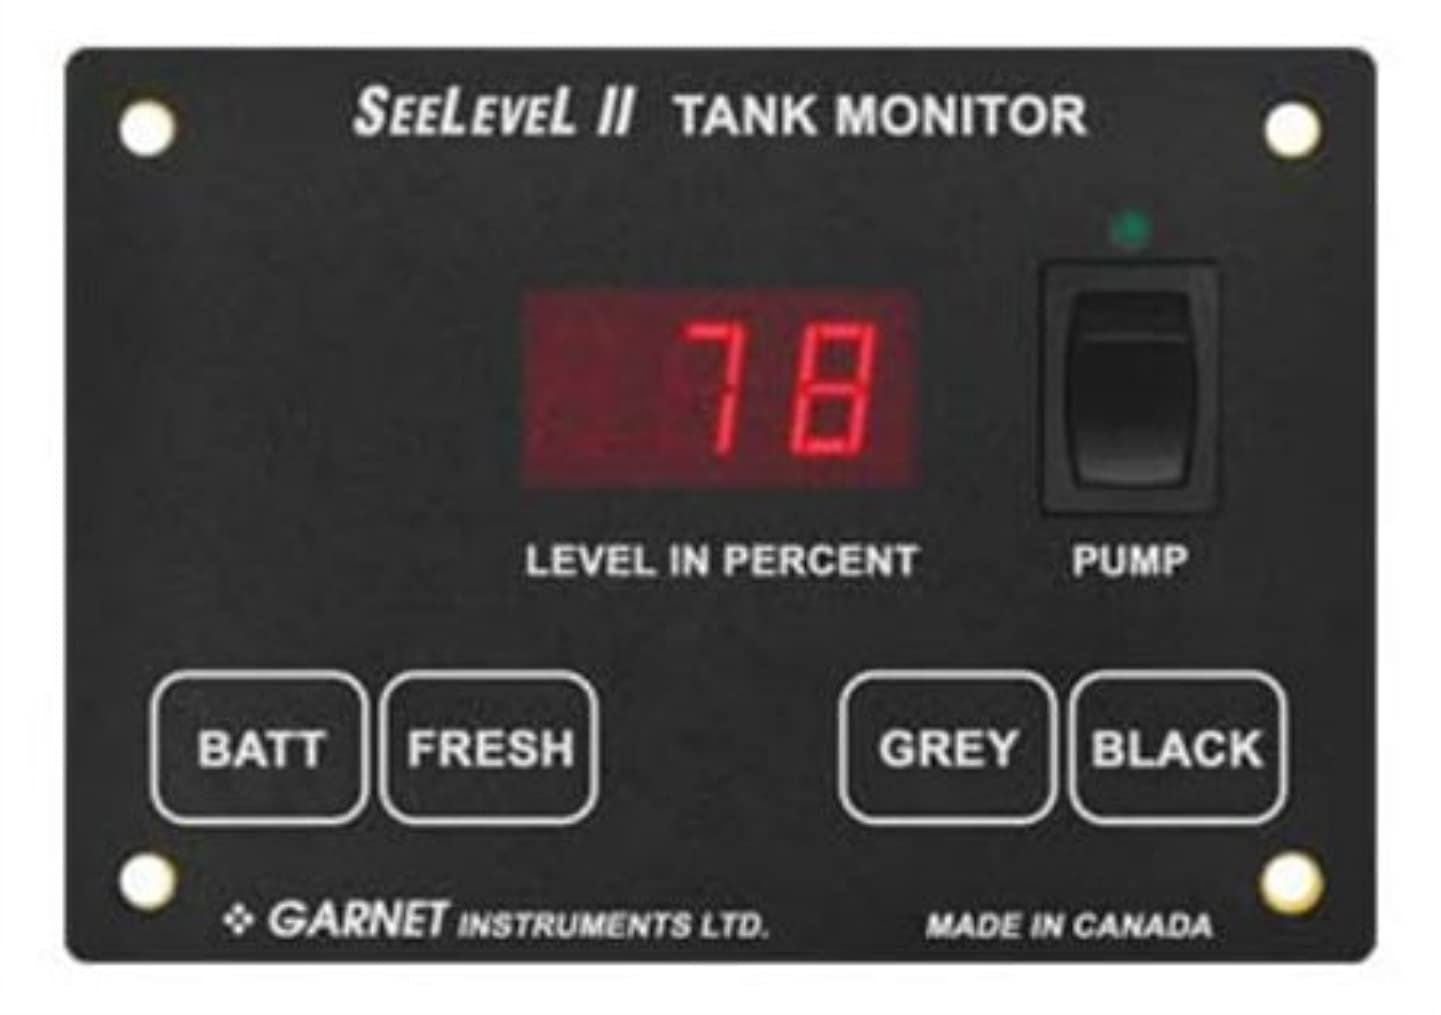 Garnet 709-RVC-PM SeeLevel II Tank Monitoring System with Alarm